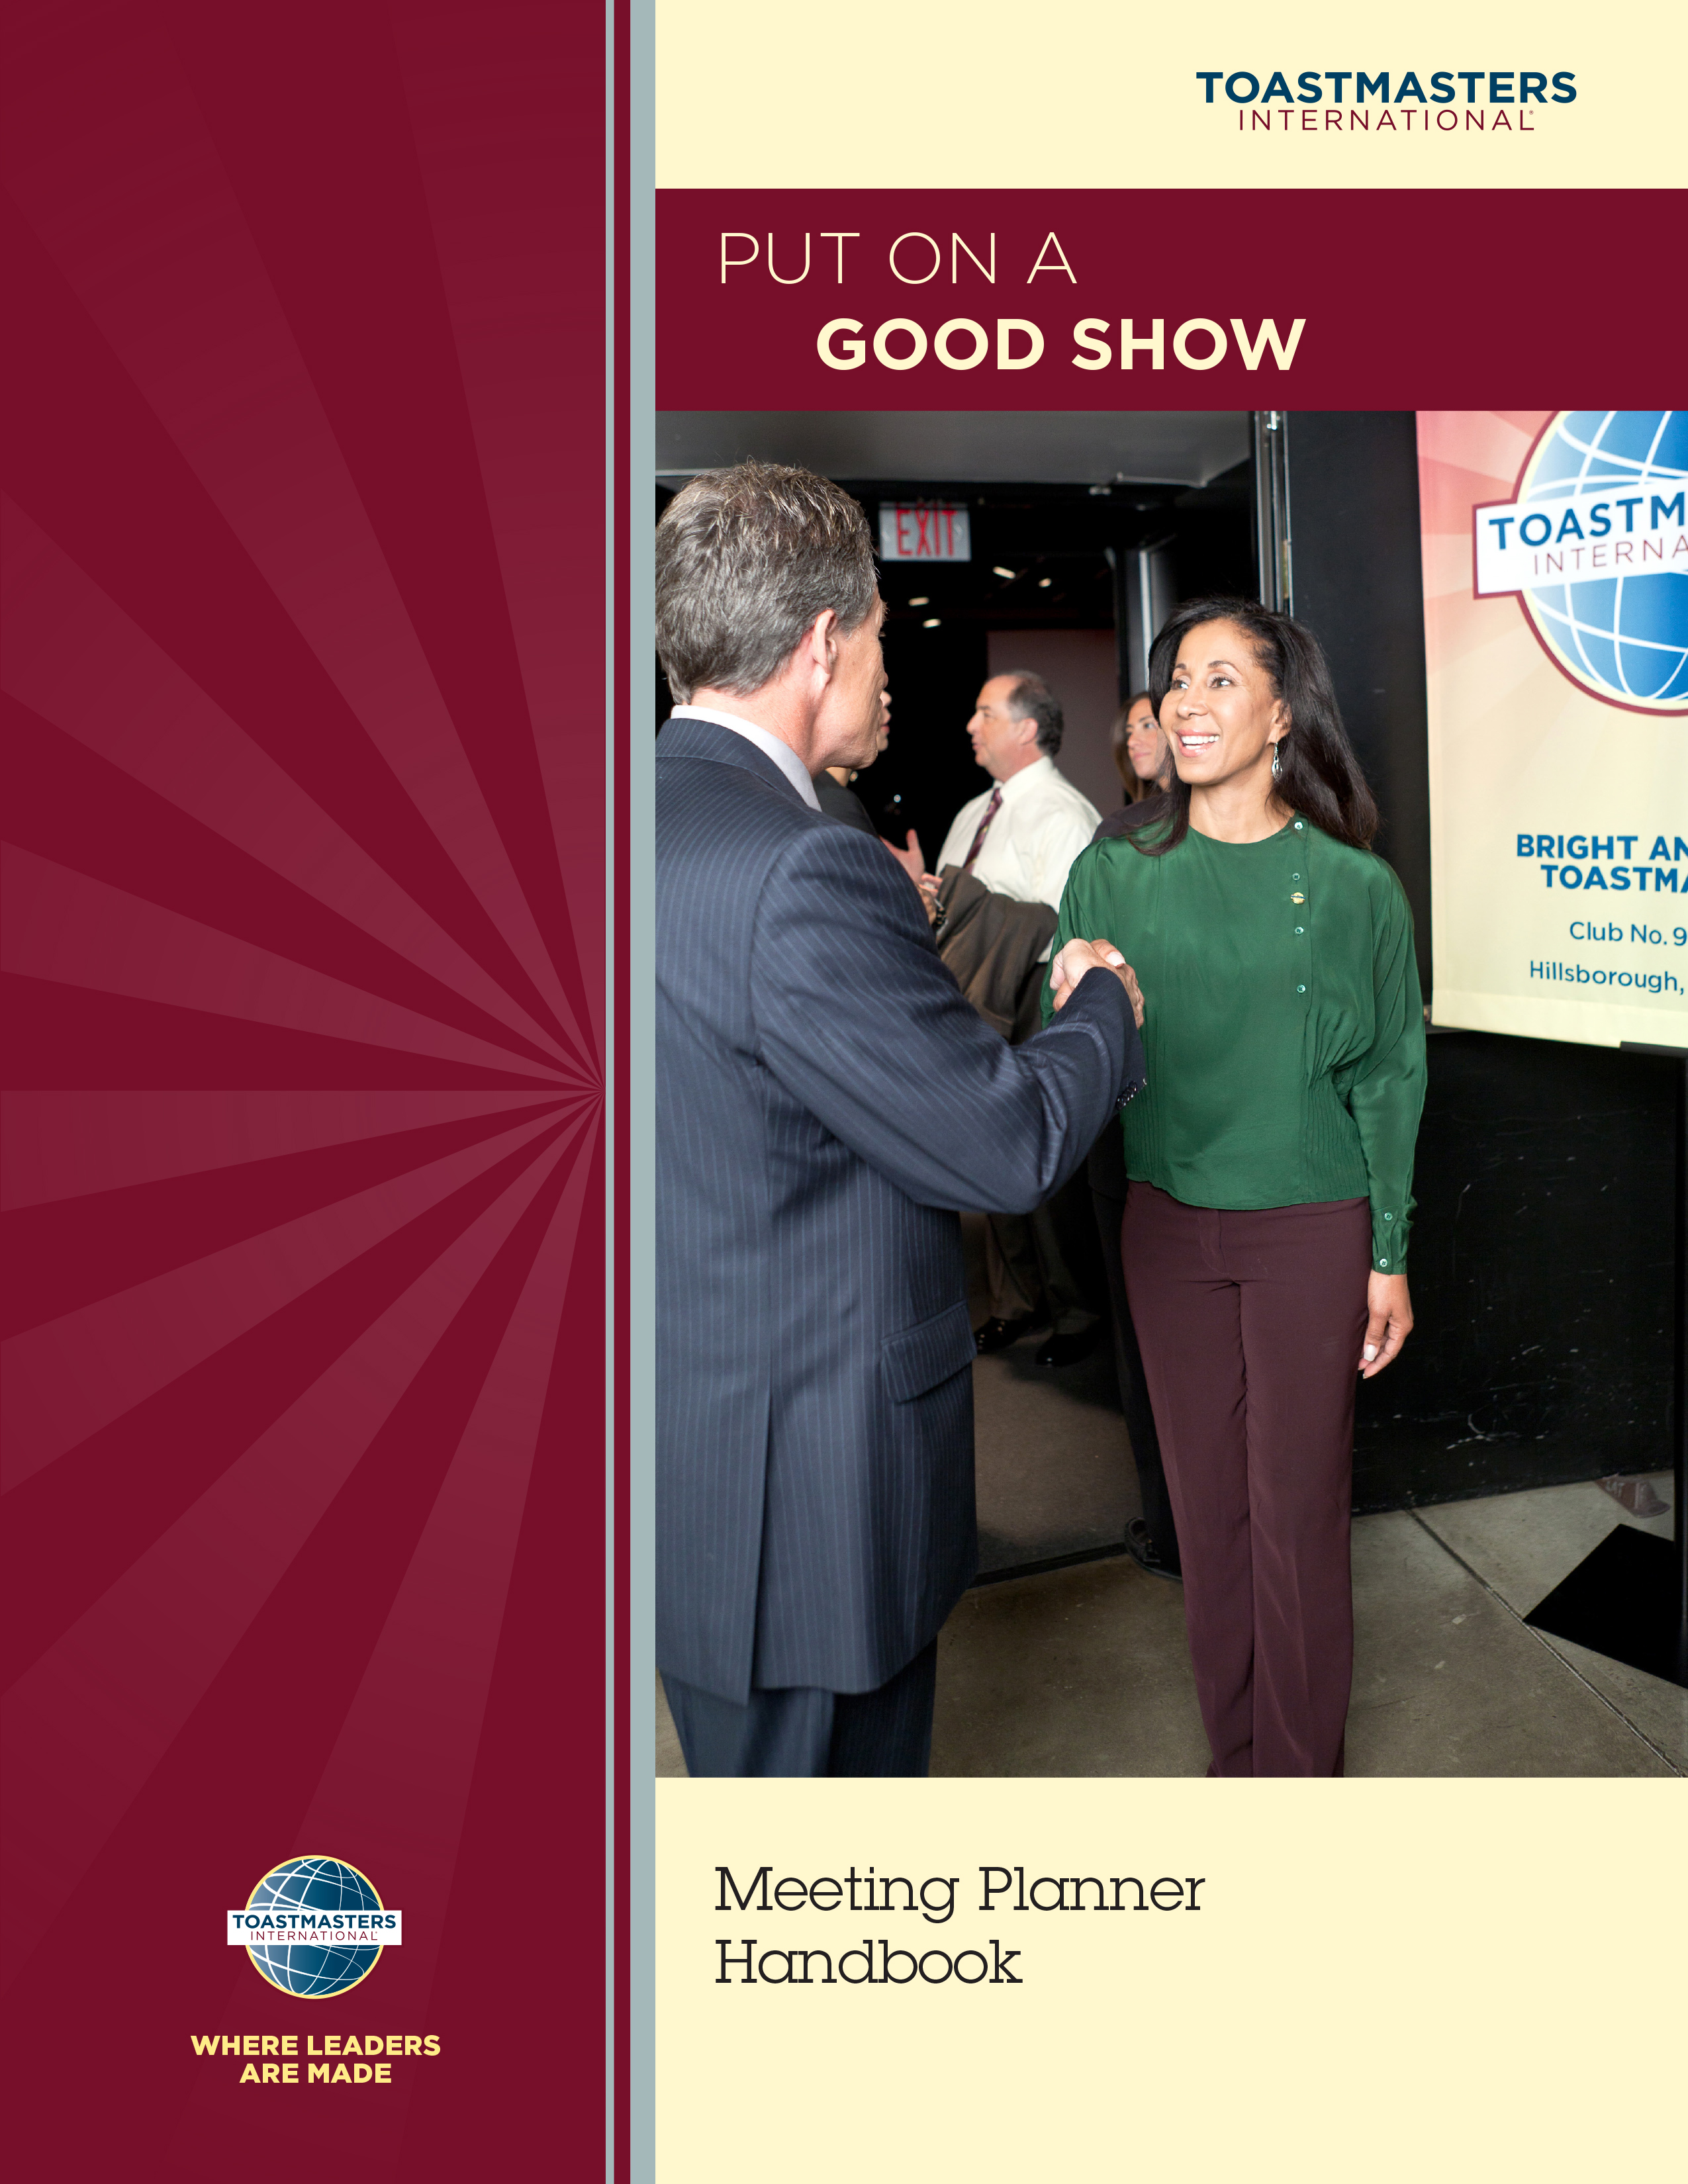 Put on a Good Show - Meeting Handbook